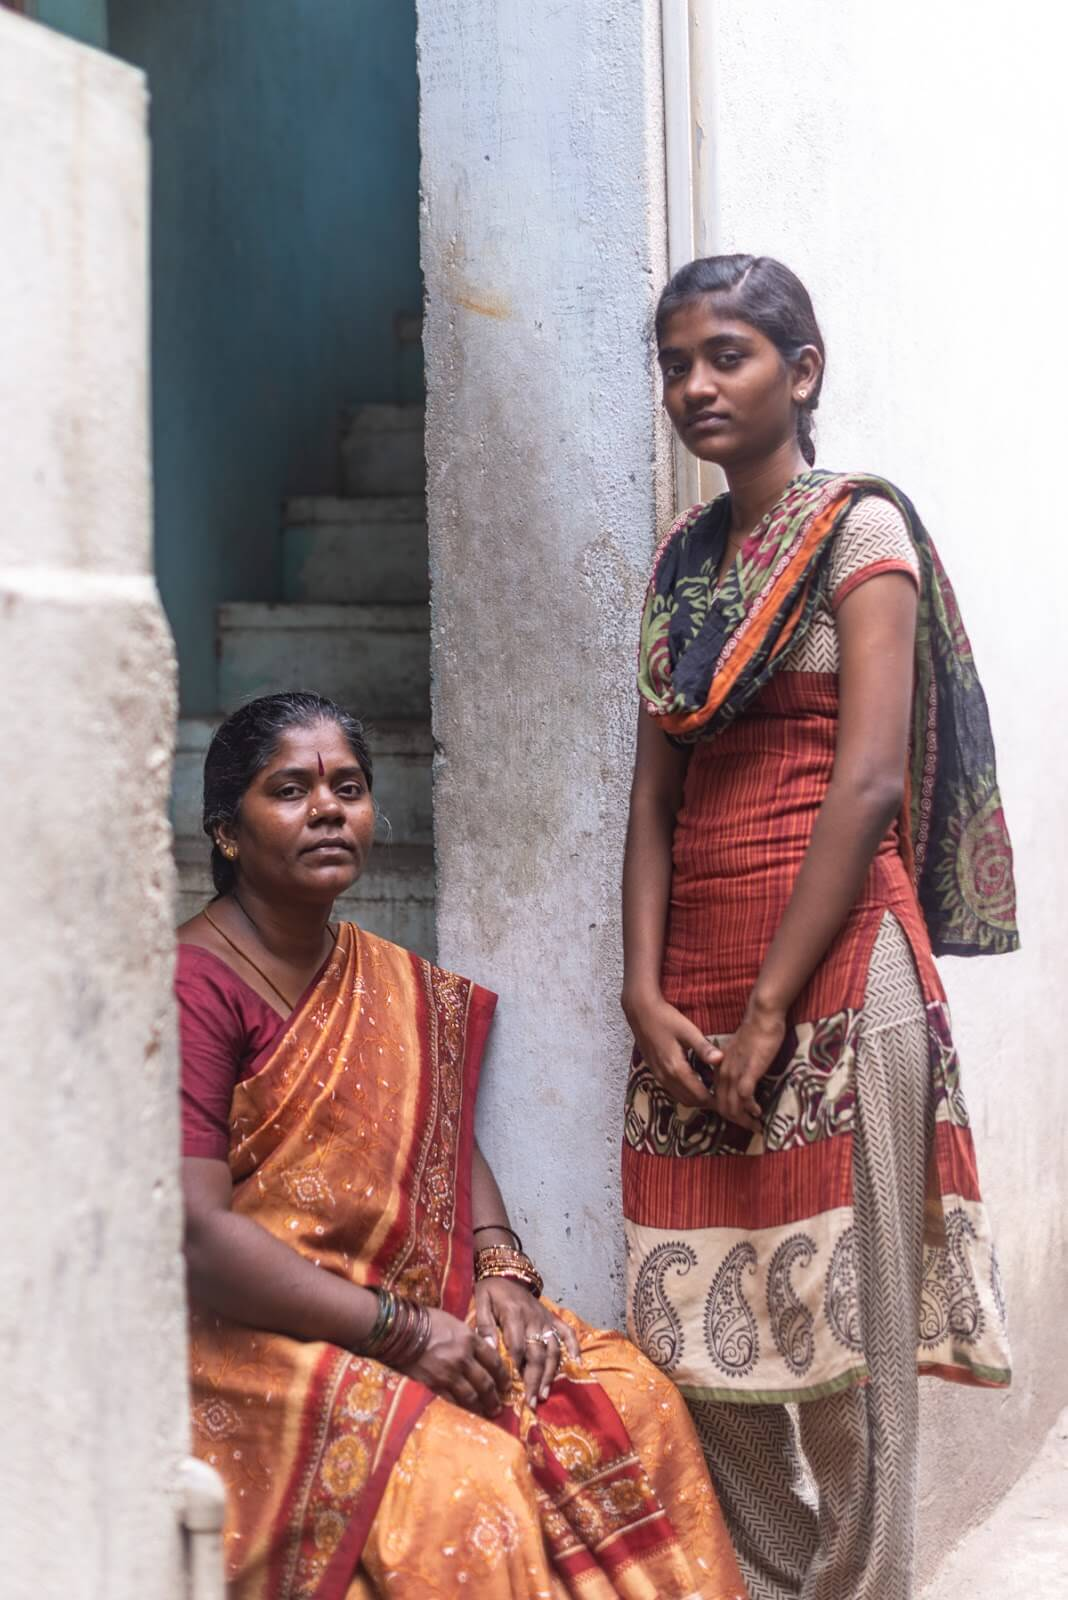 Kannika and one of her daughters outside their home in Chennai, India. Photo credit: Gayatri Nair